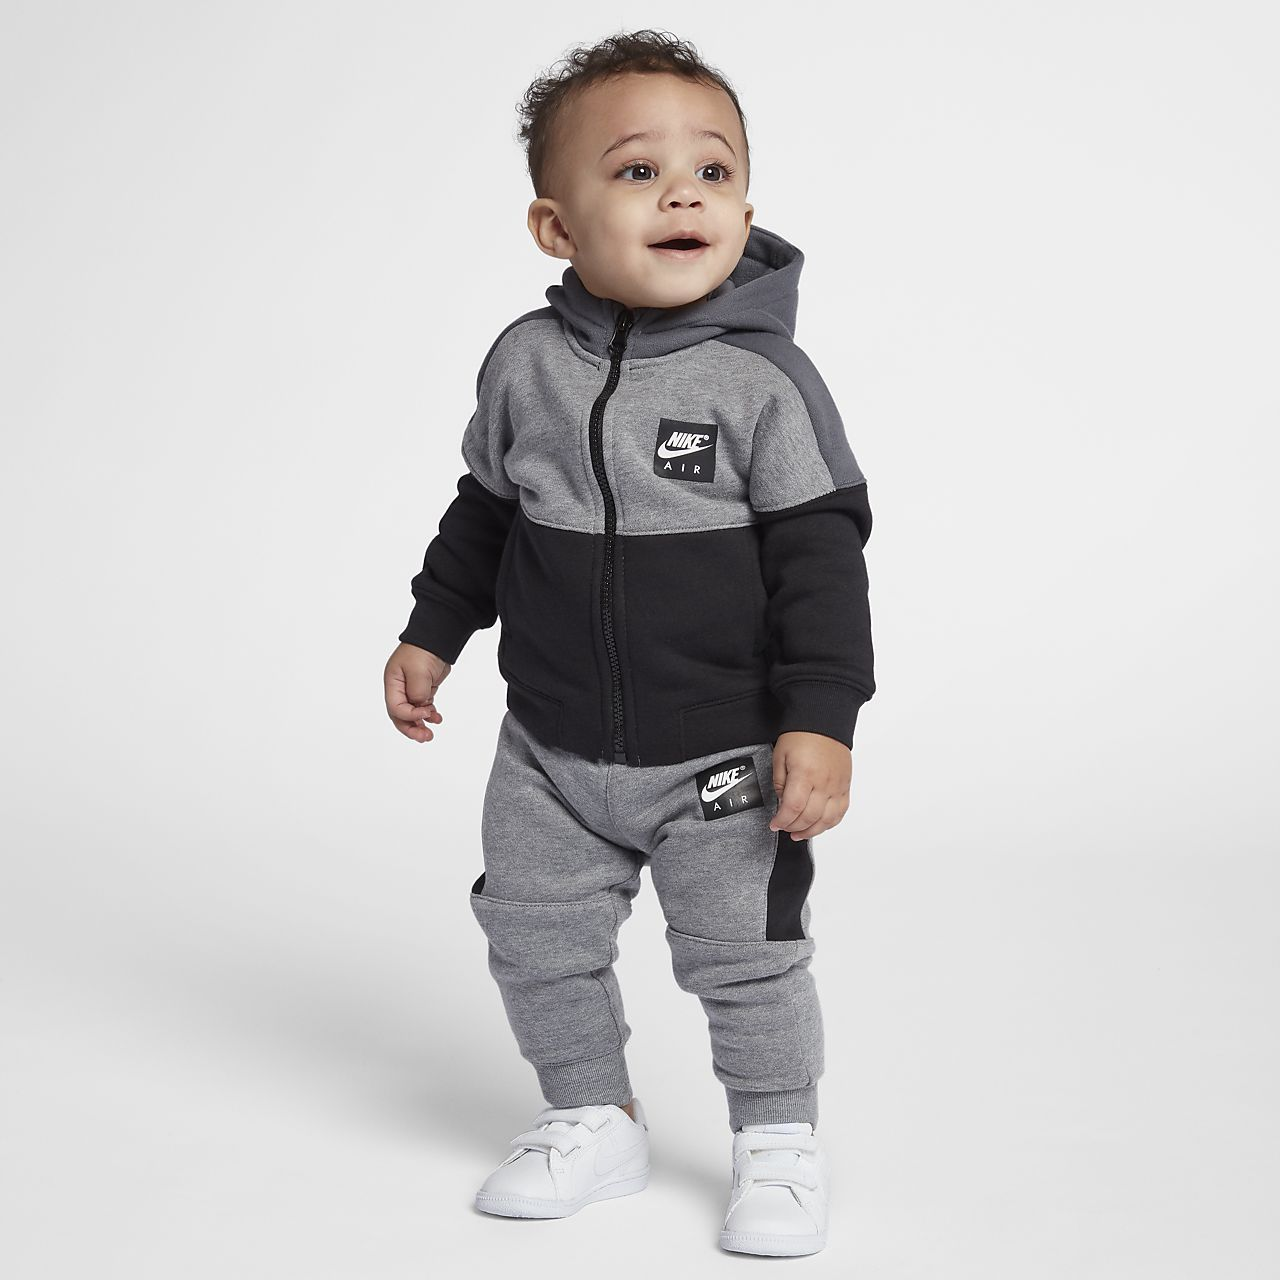 Nike Air Fleece Two Piece Infant Toddler Set Nike Baby Clothes Baby Fashion Baby Boy Nike